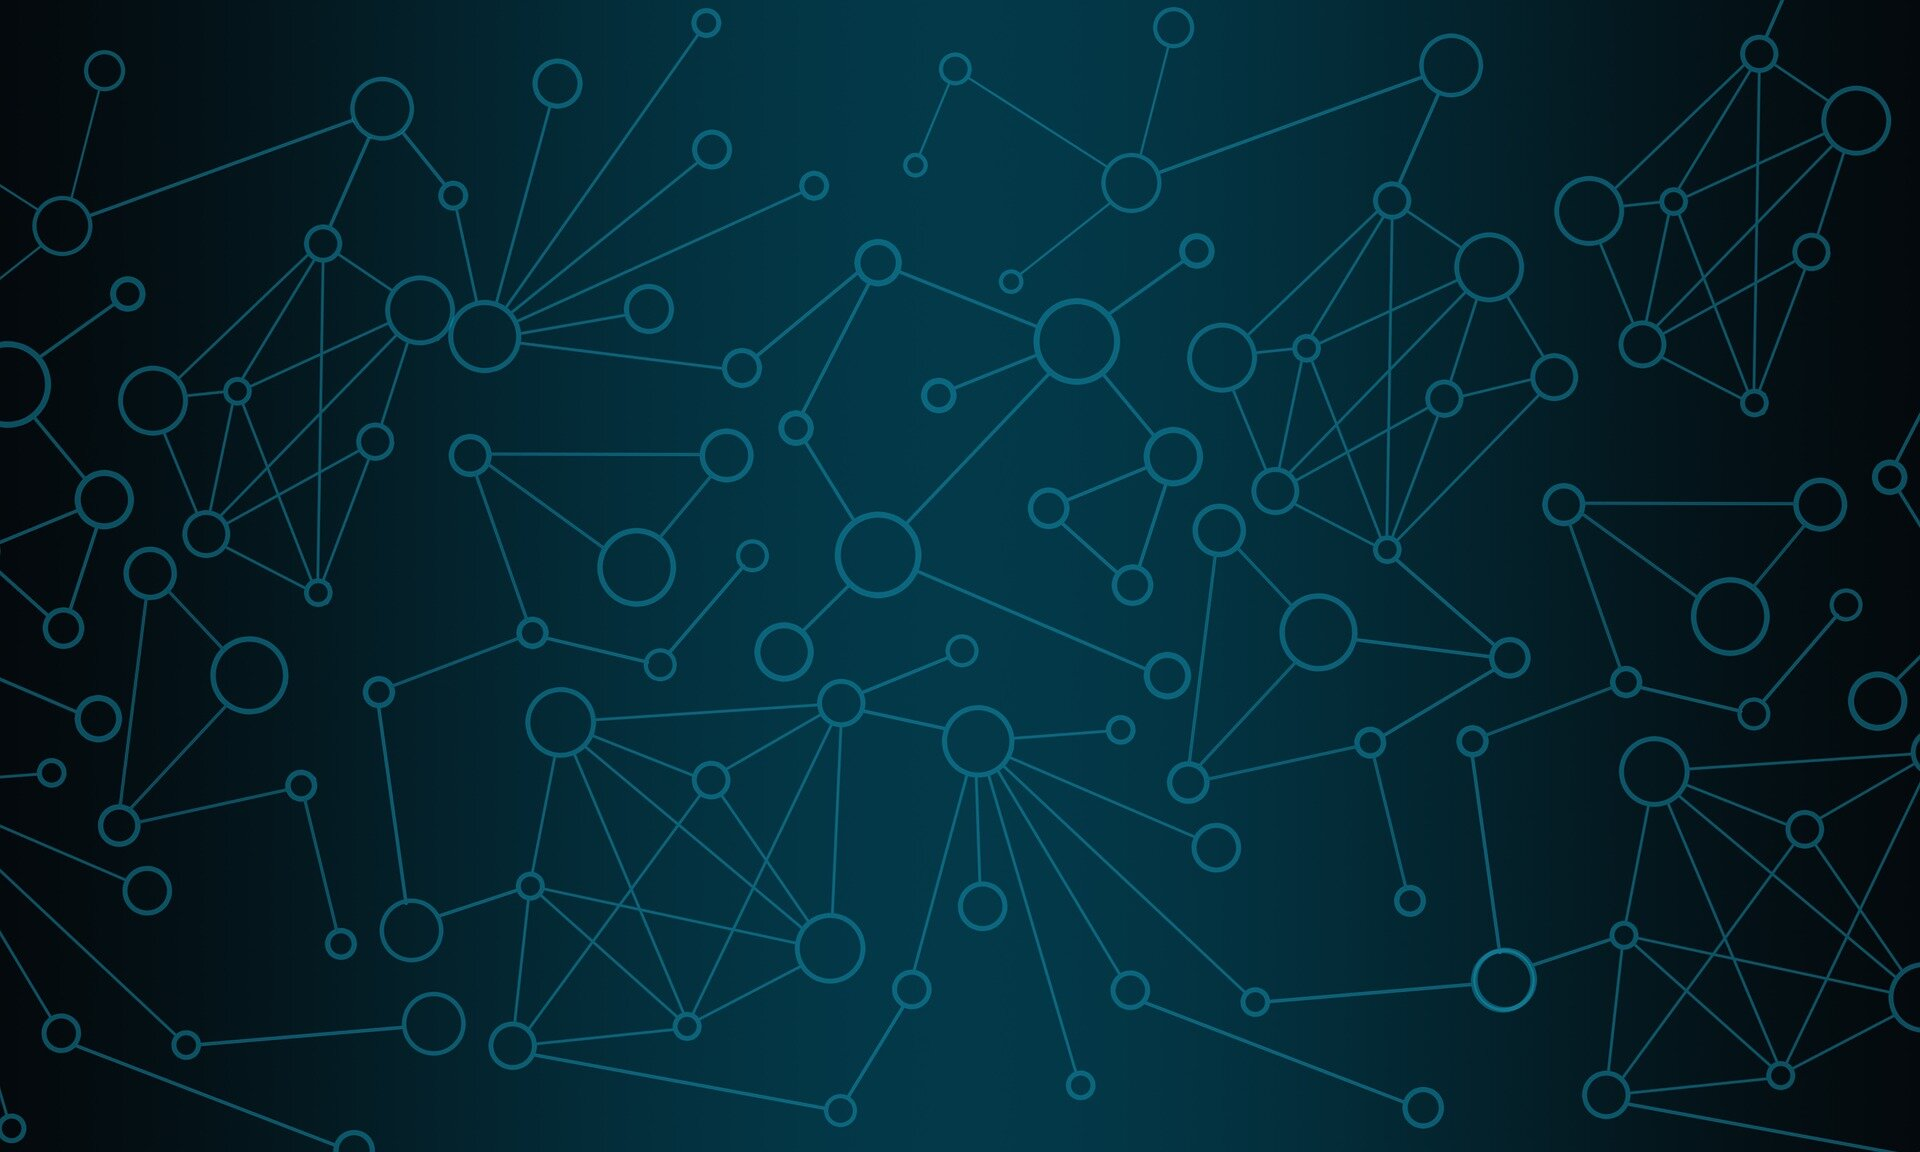 A sharper definition of 'scale-free' provides better insights into networks